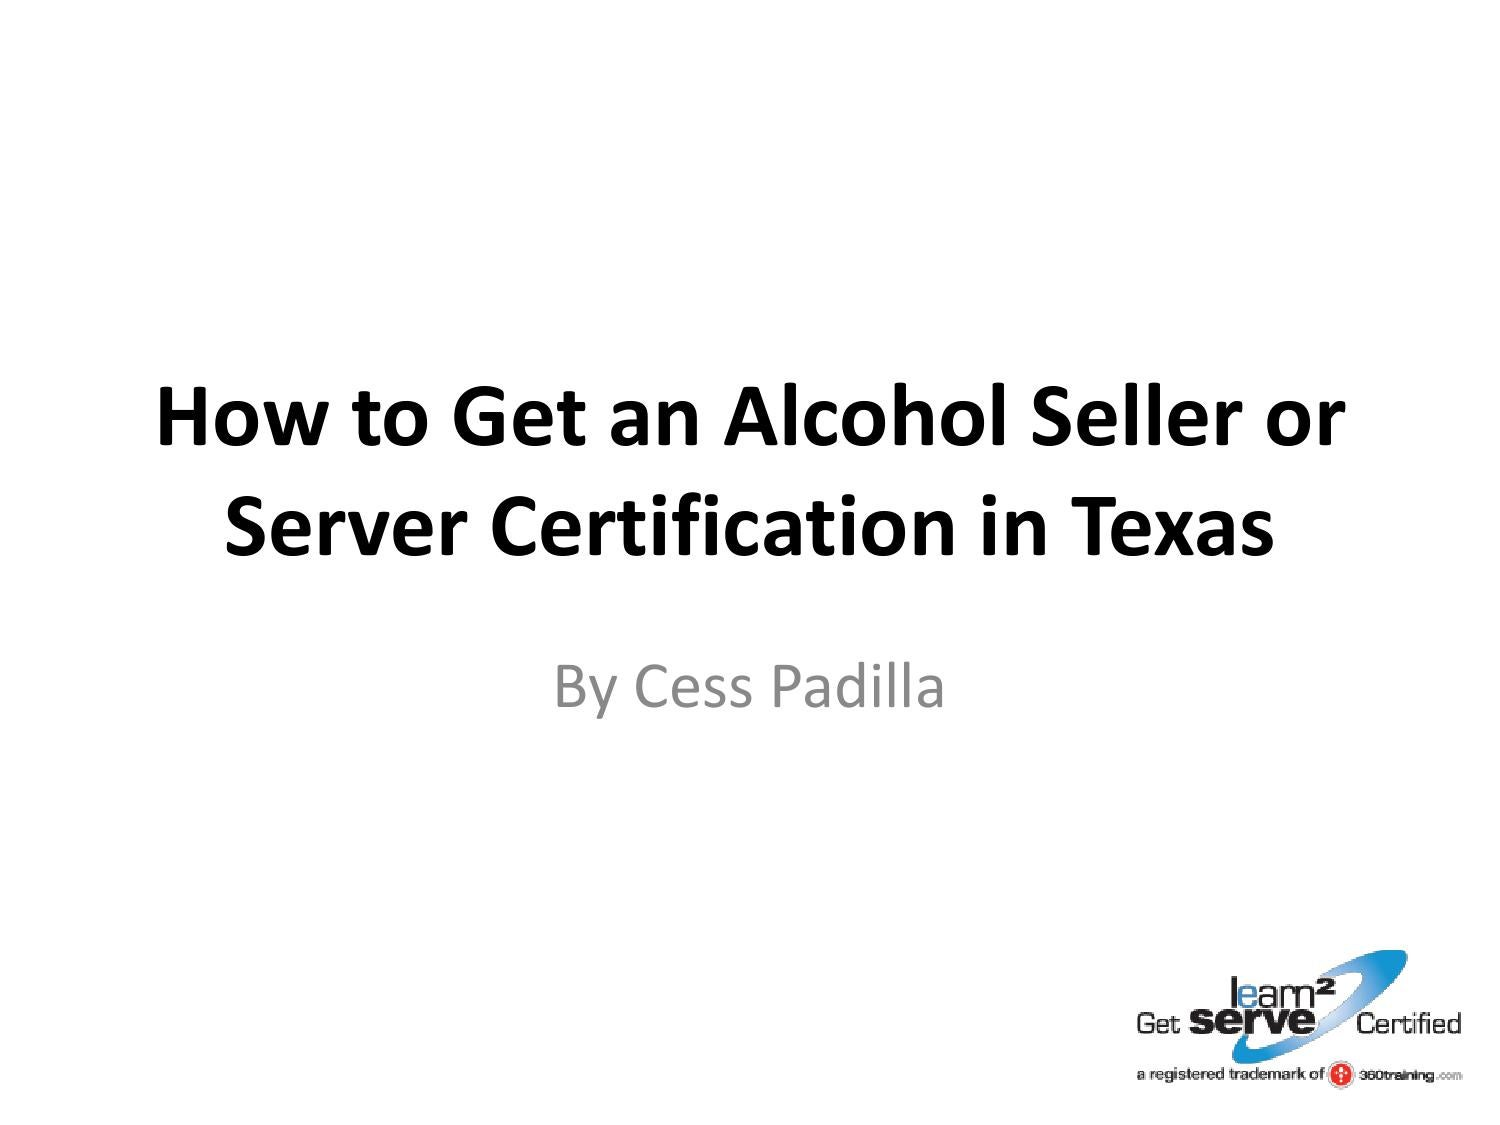 How To Get An Alcohol Seller Or Server Certification In Texas By